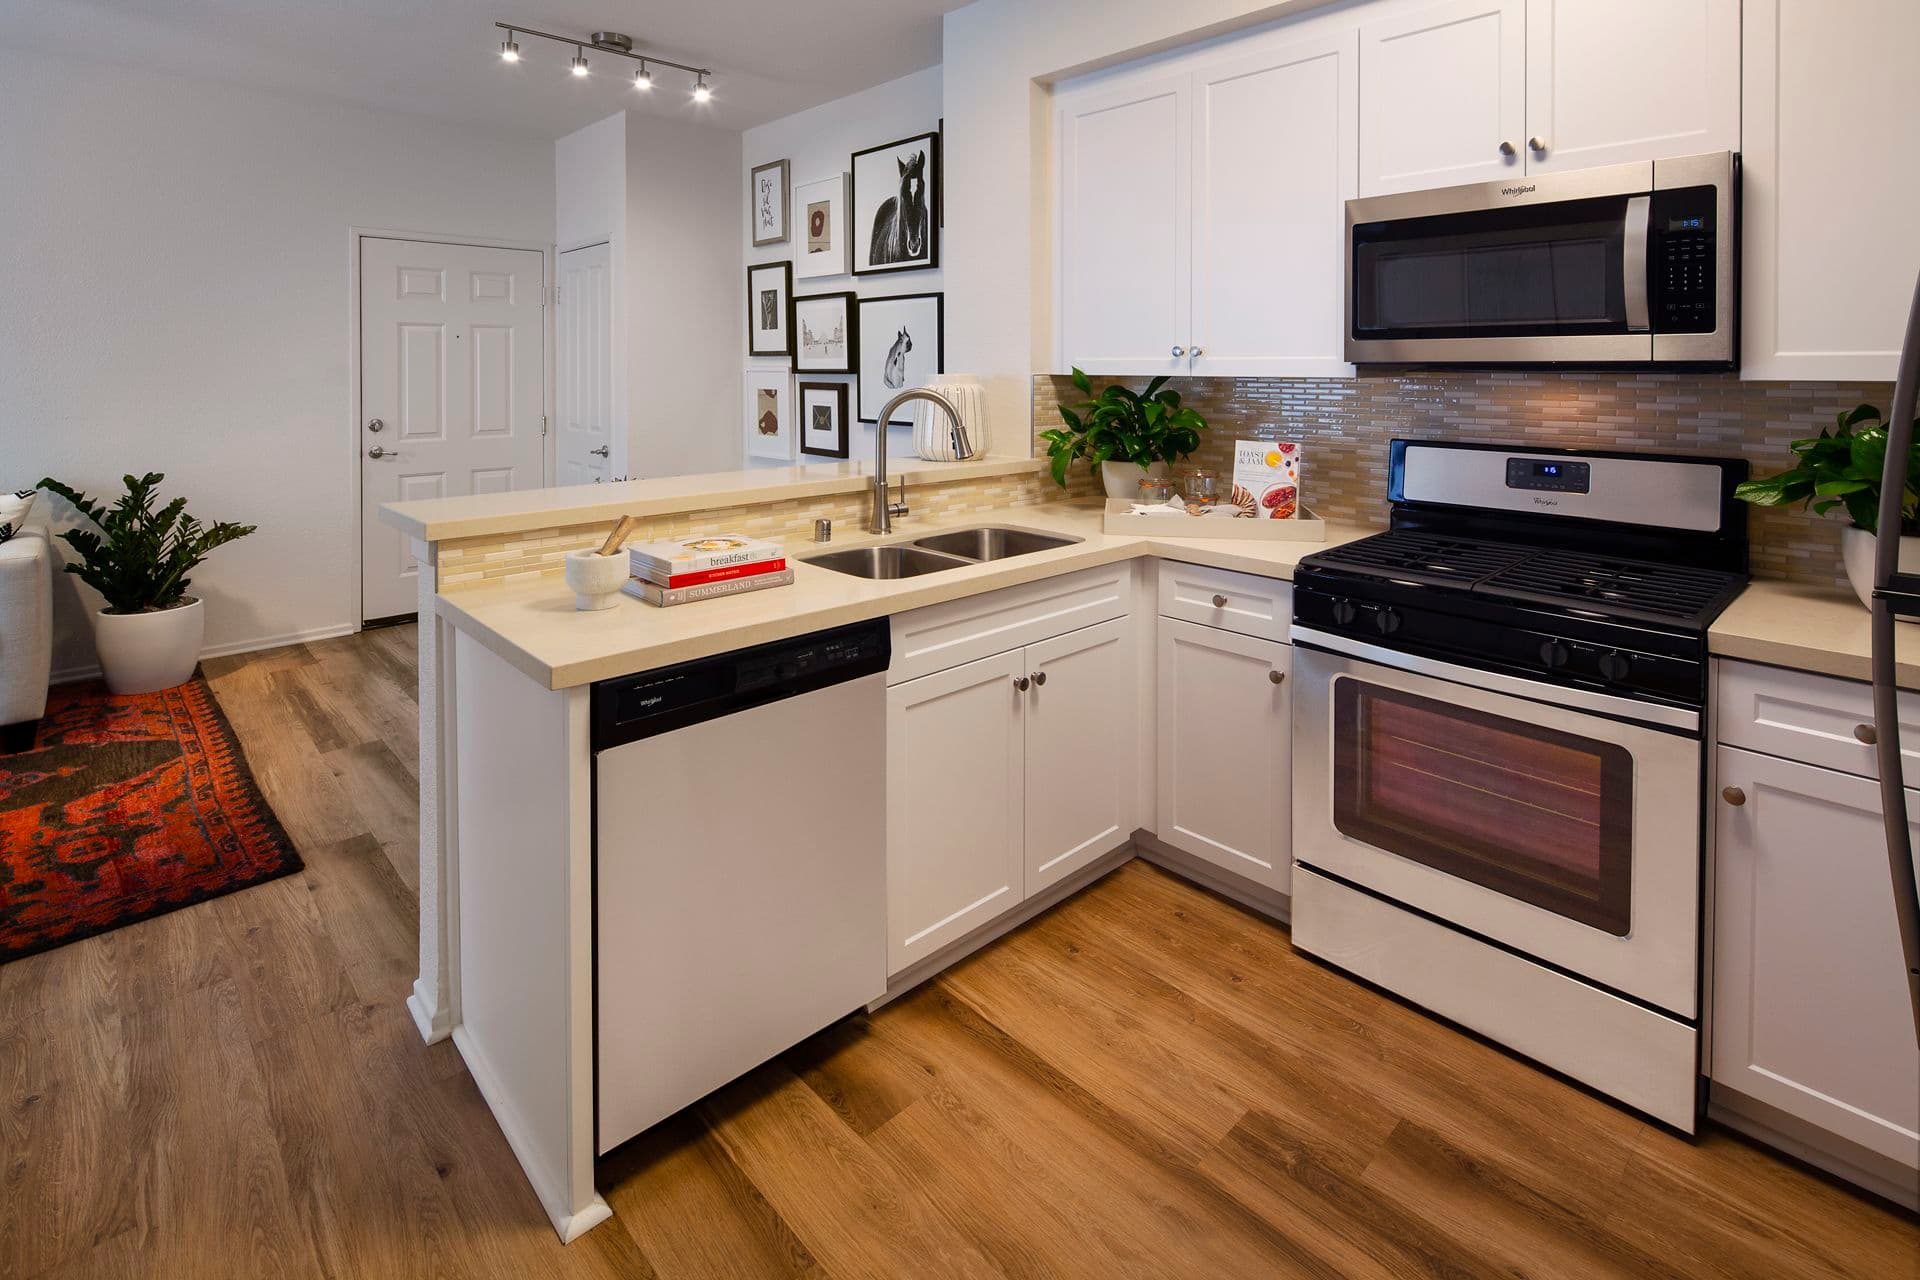 Interior view of the kitchen at Las Palmas Apartment Homes in Irvine, CA.